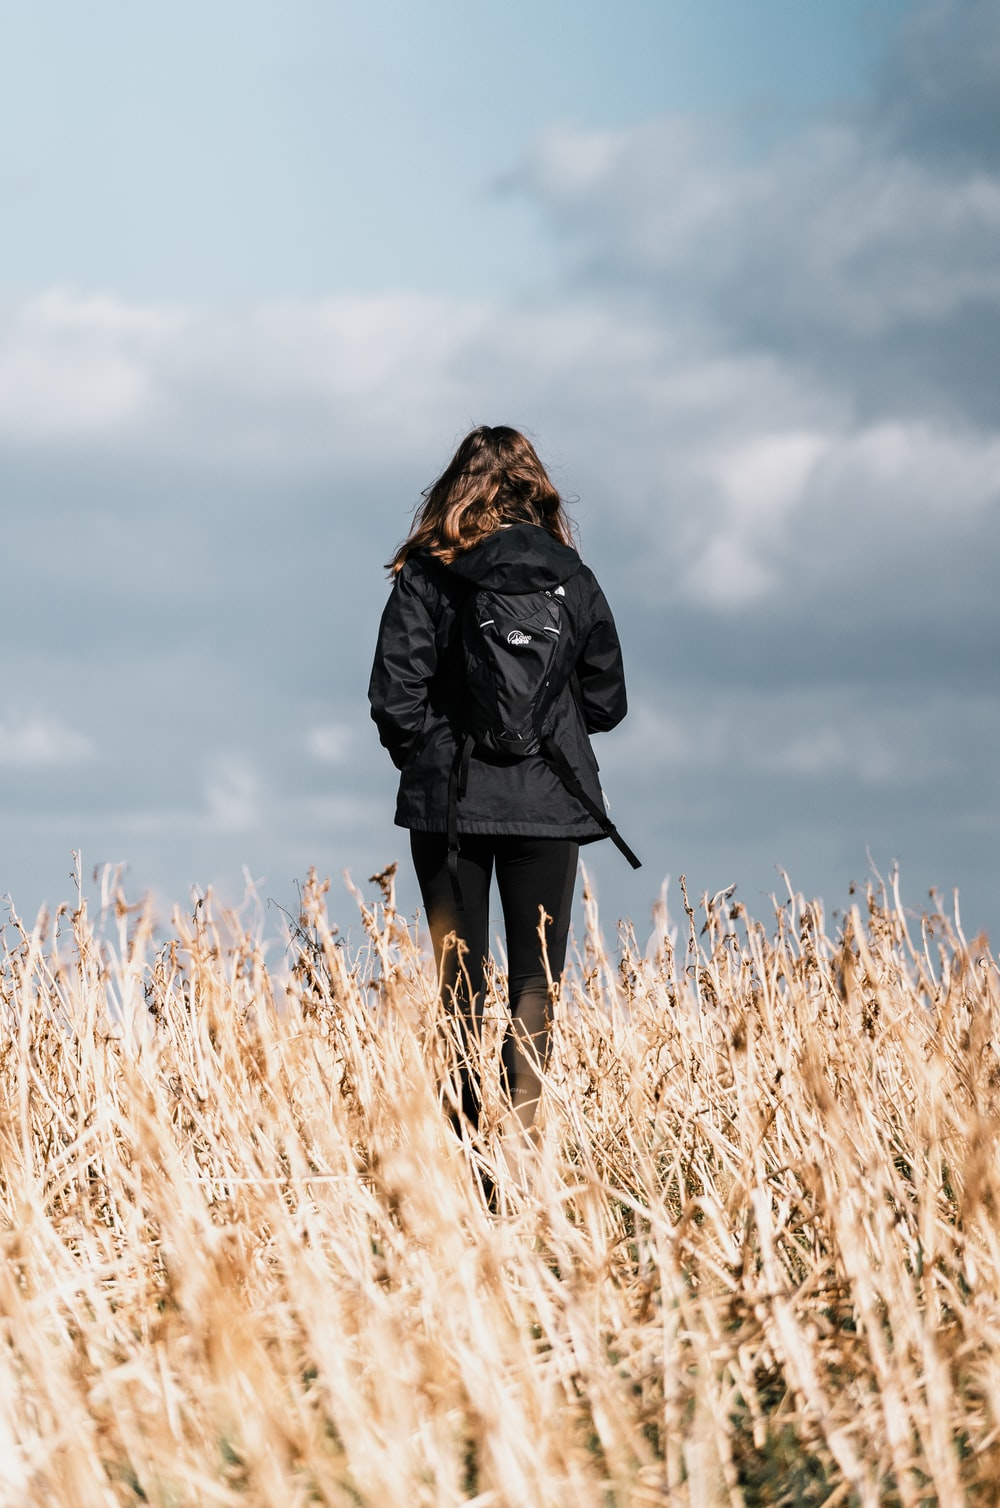 woman in black coat standing on brown grass field during daytime